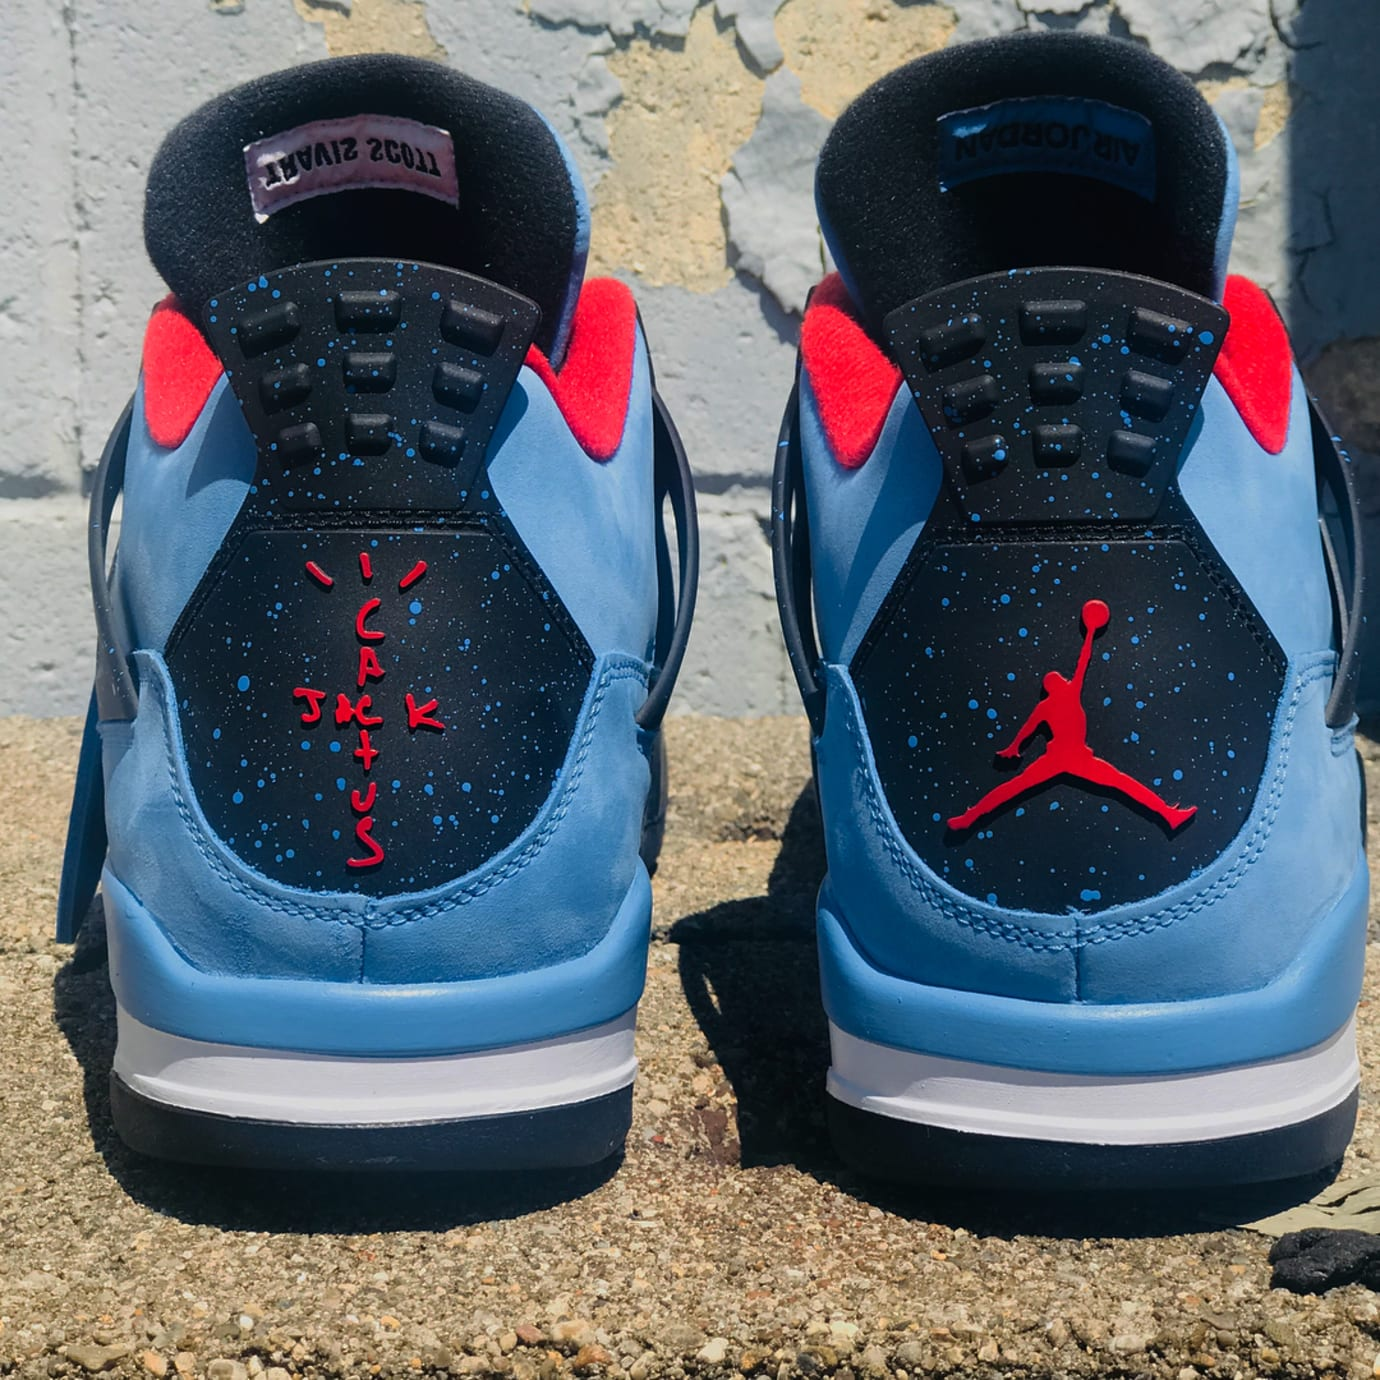 8499b151df83 Travis Scott x Air Jordan 4  Houston Oilers  308497-406 Release Date ...